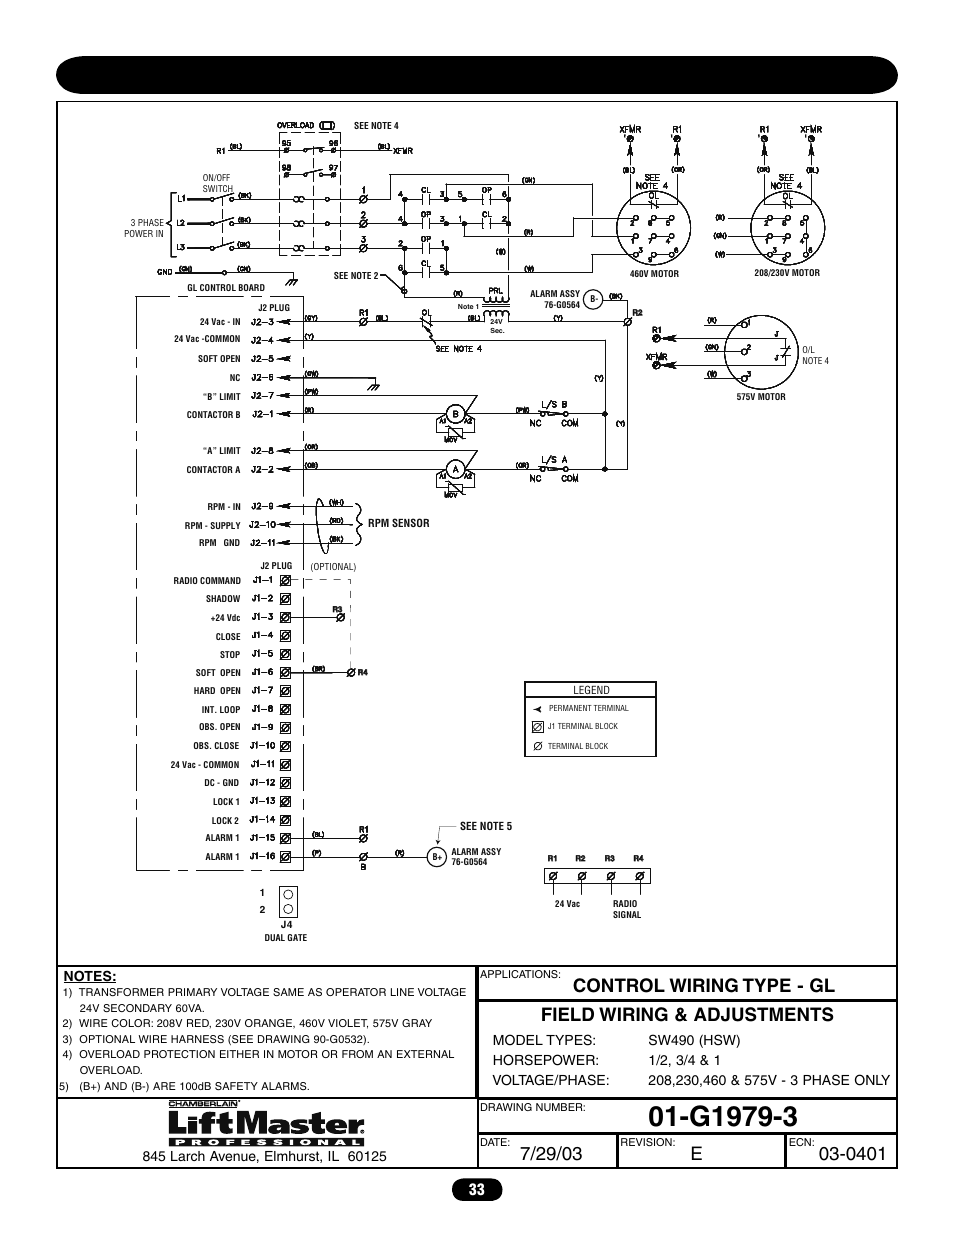 medium resolution of three phase wiring diagram sw490 chamberlain liftmaster professional sw470 user manual page